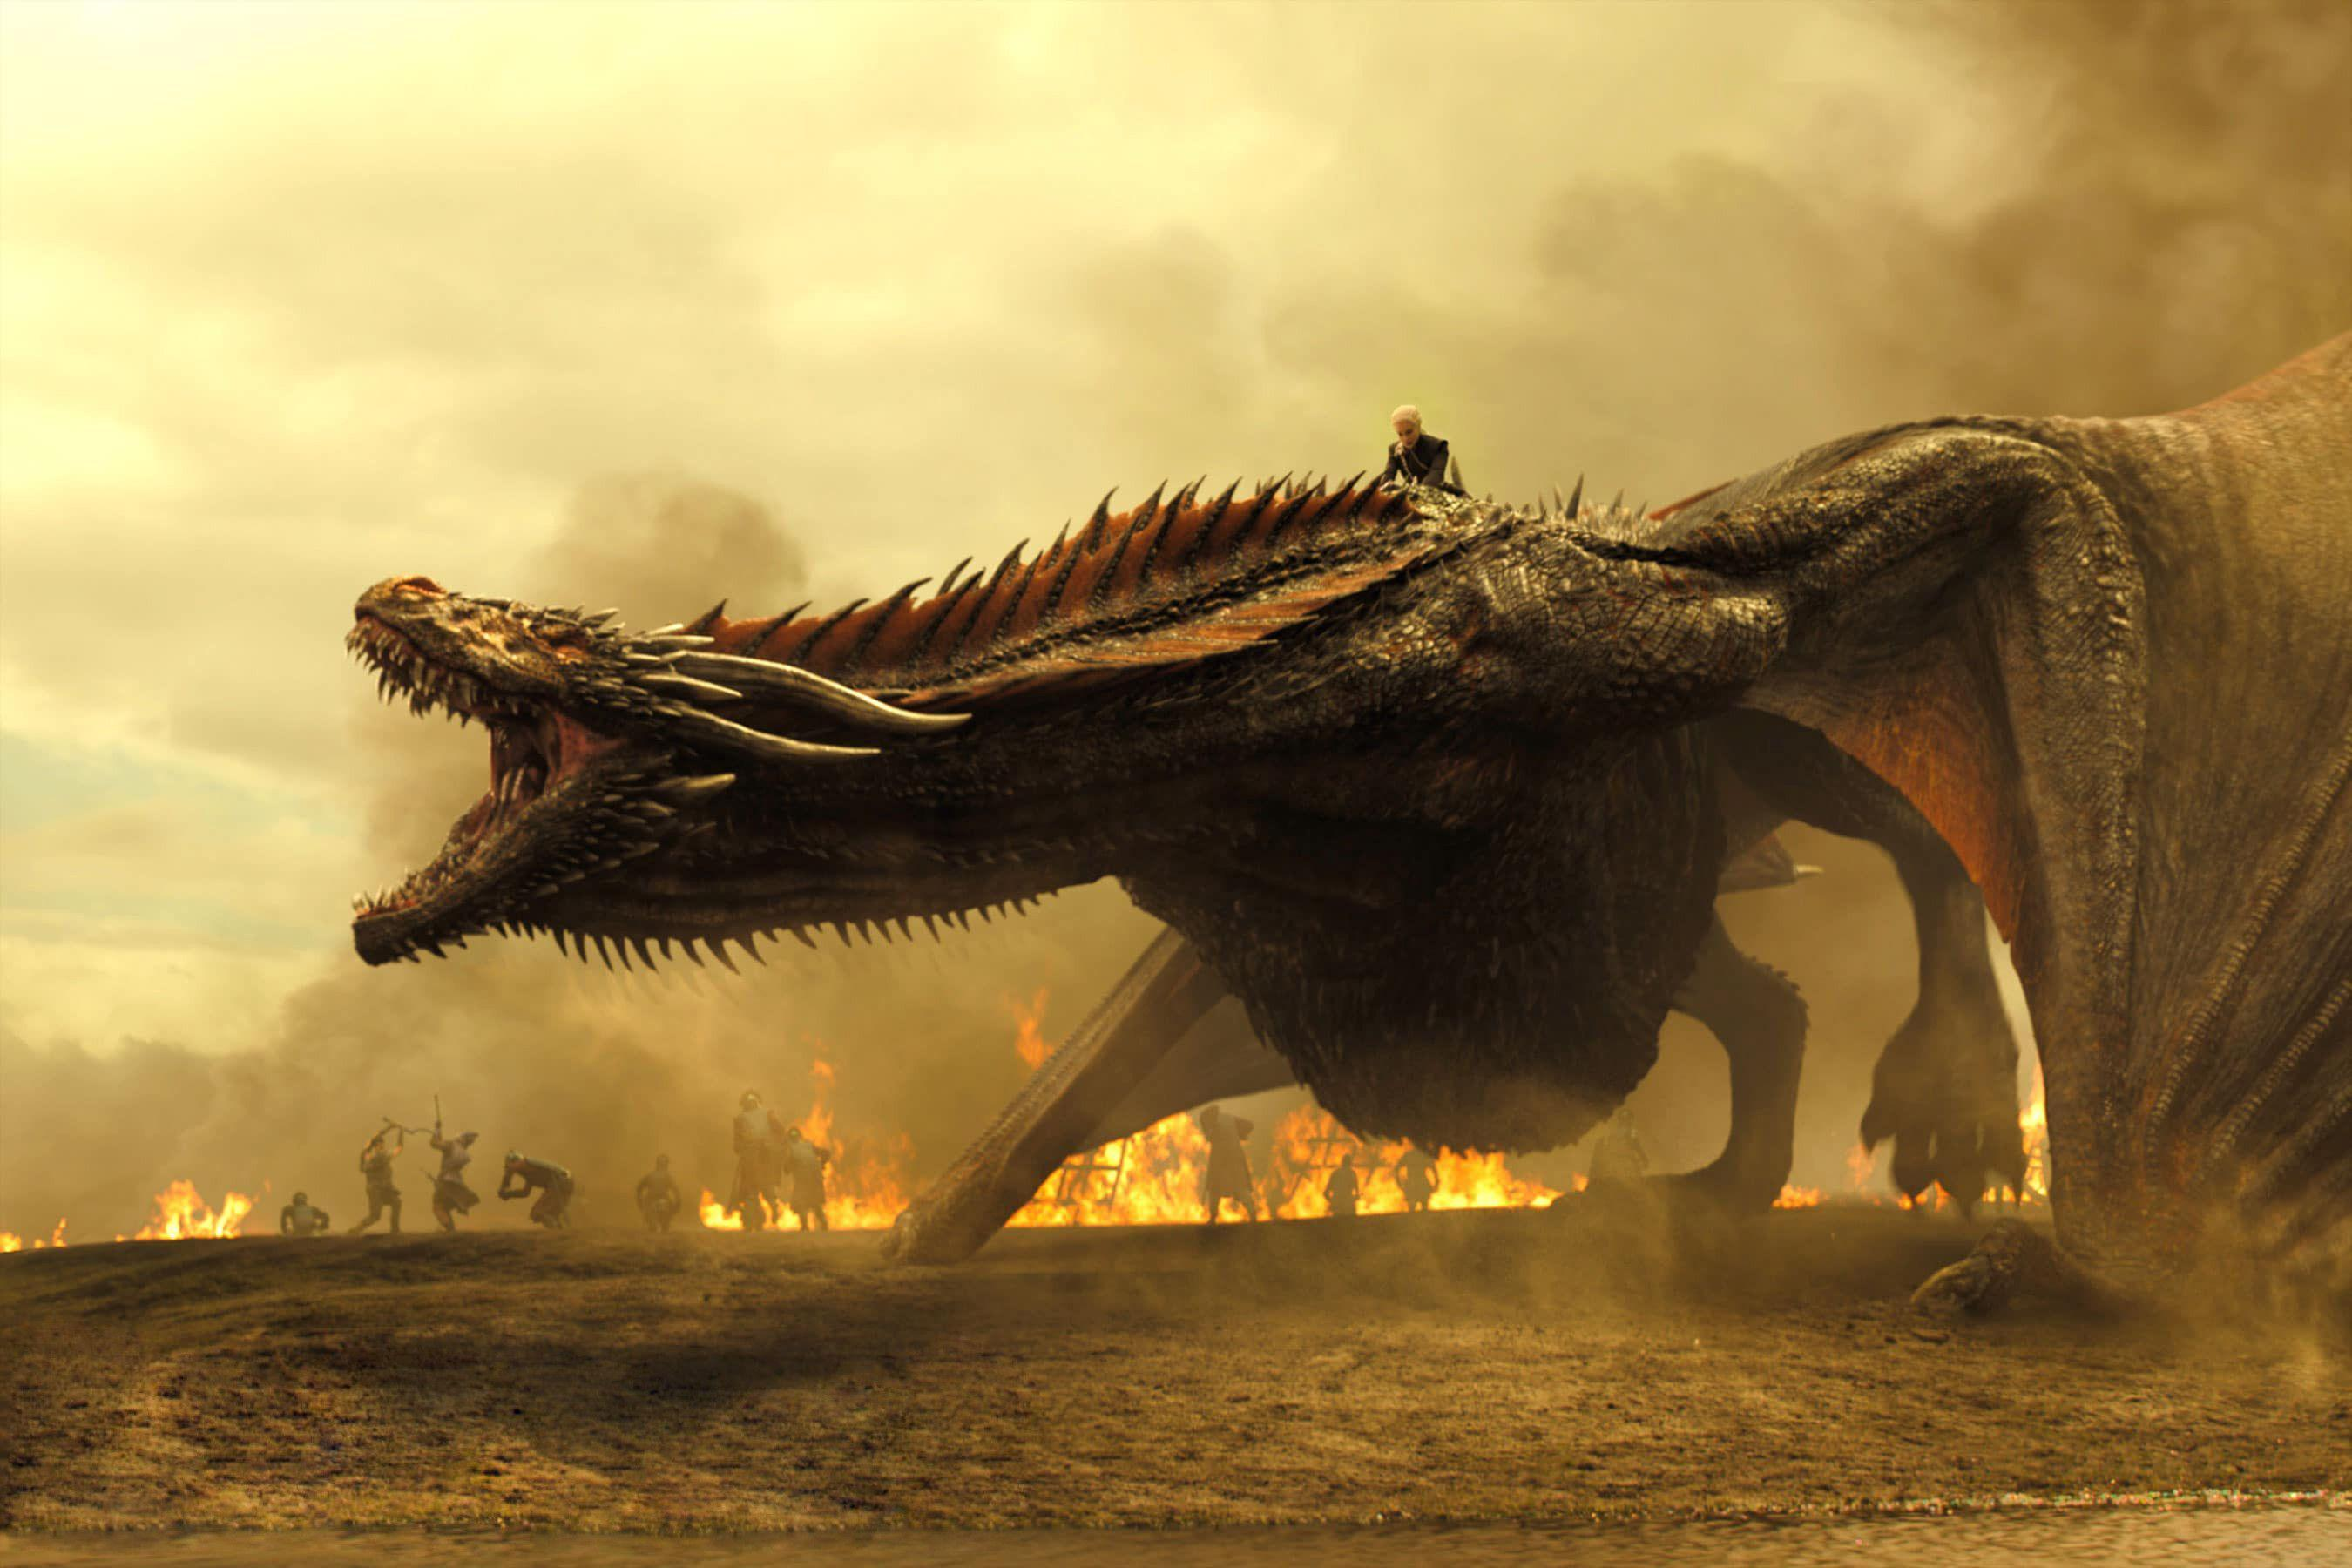 4k Game Of Thrones Wallpaper: Game Of Thrones Dragon Wallpapers